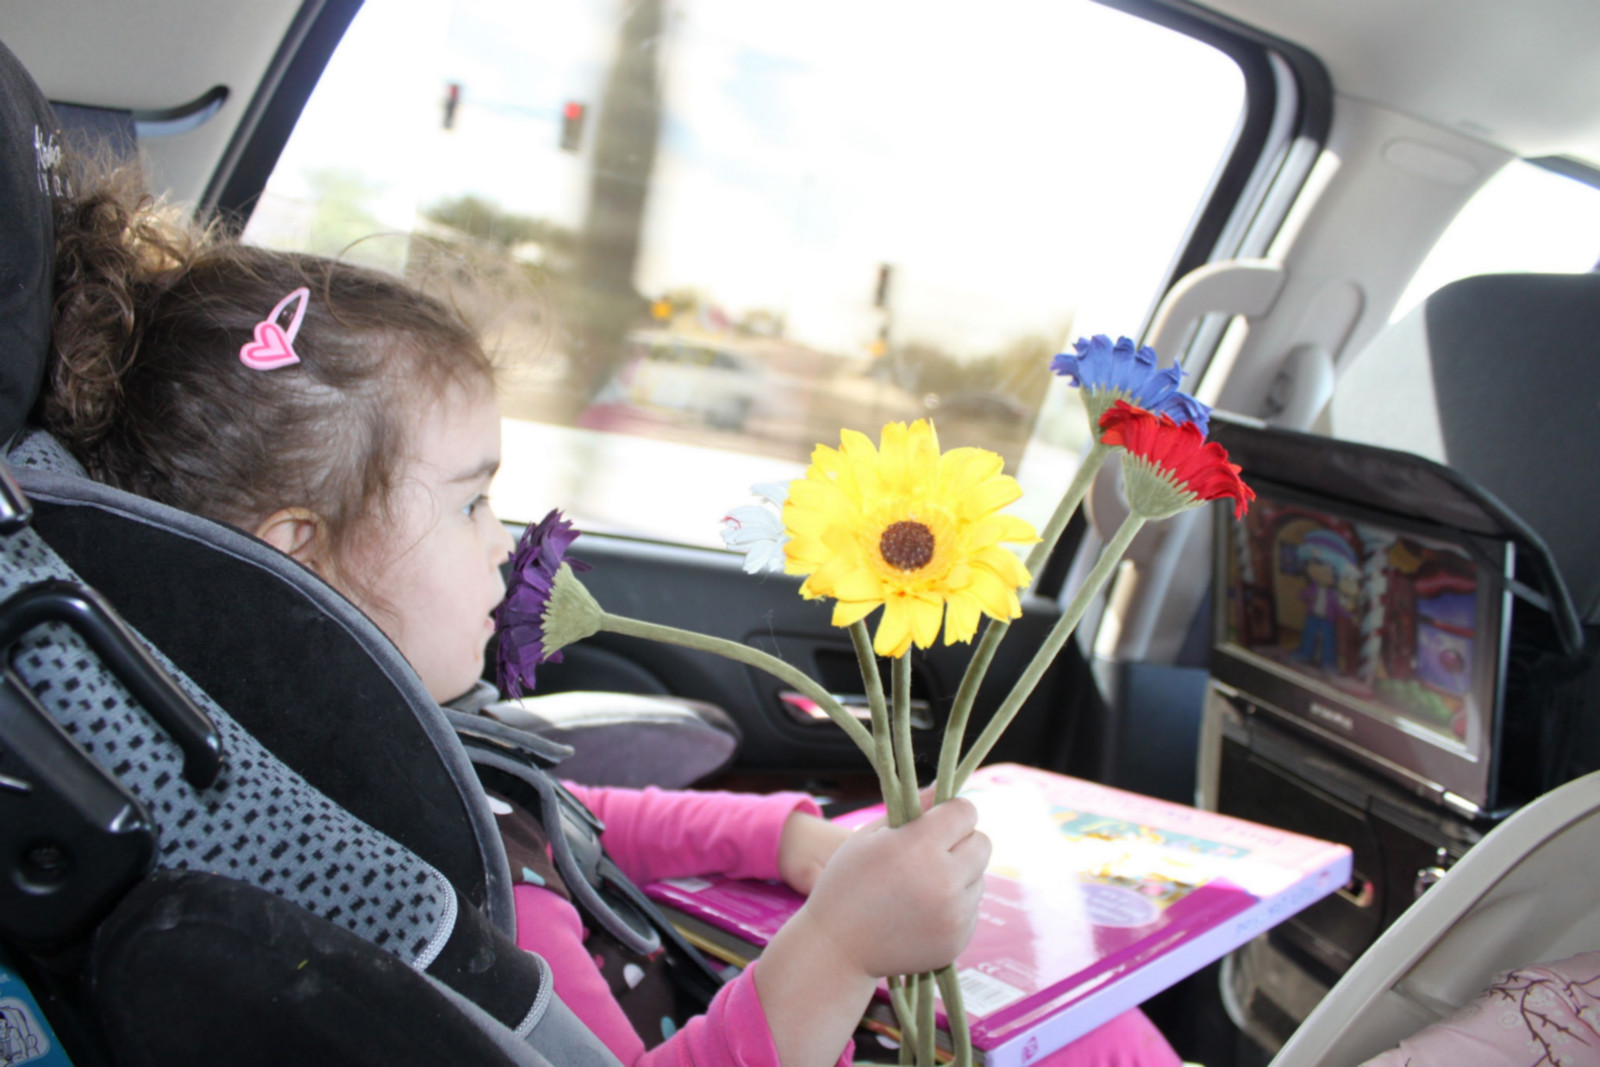 sofia drives with her flowers.jpg